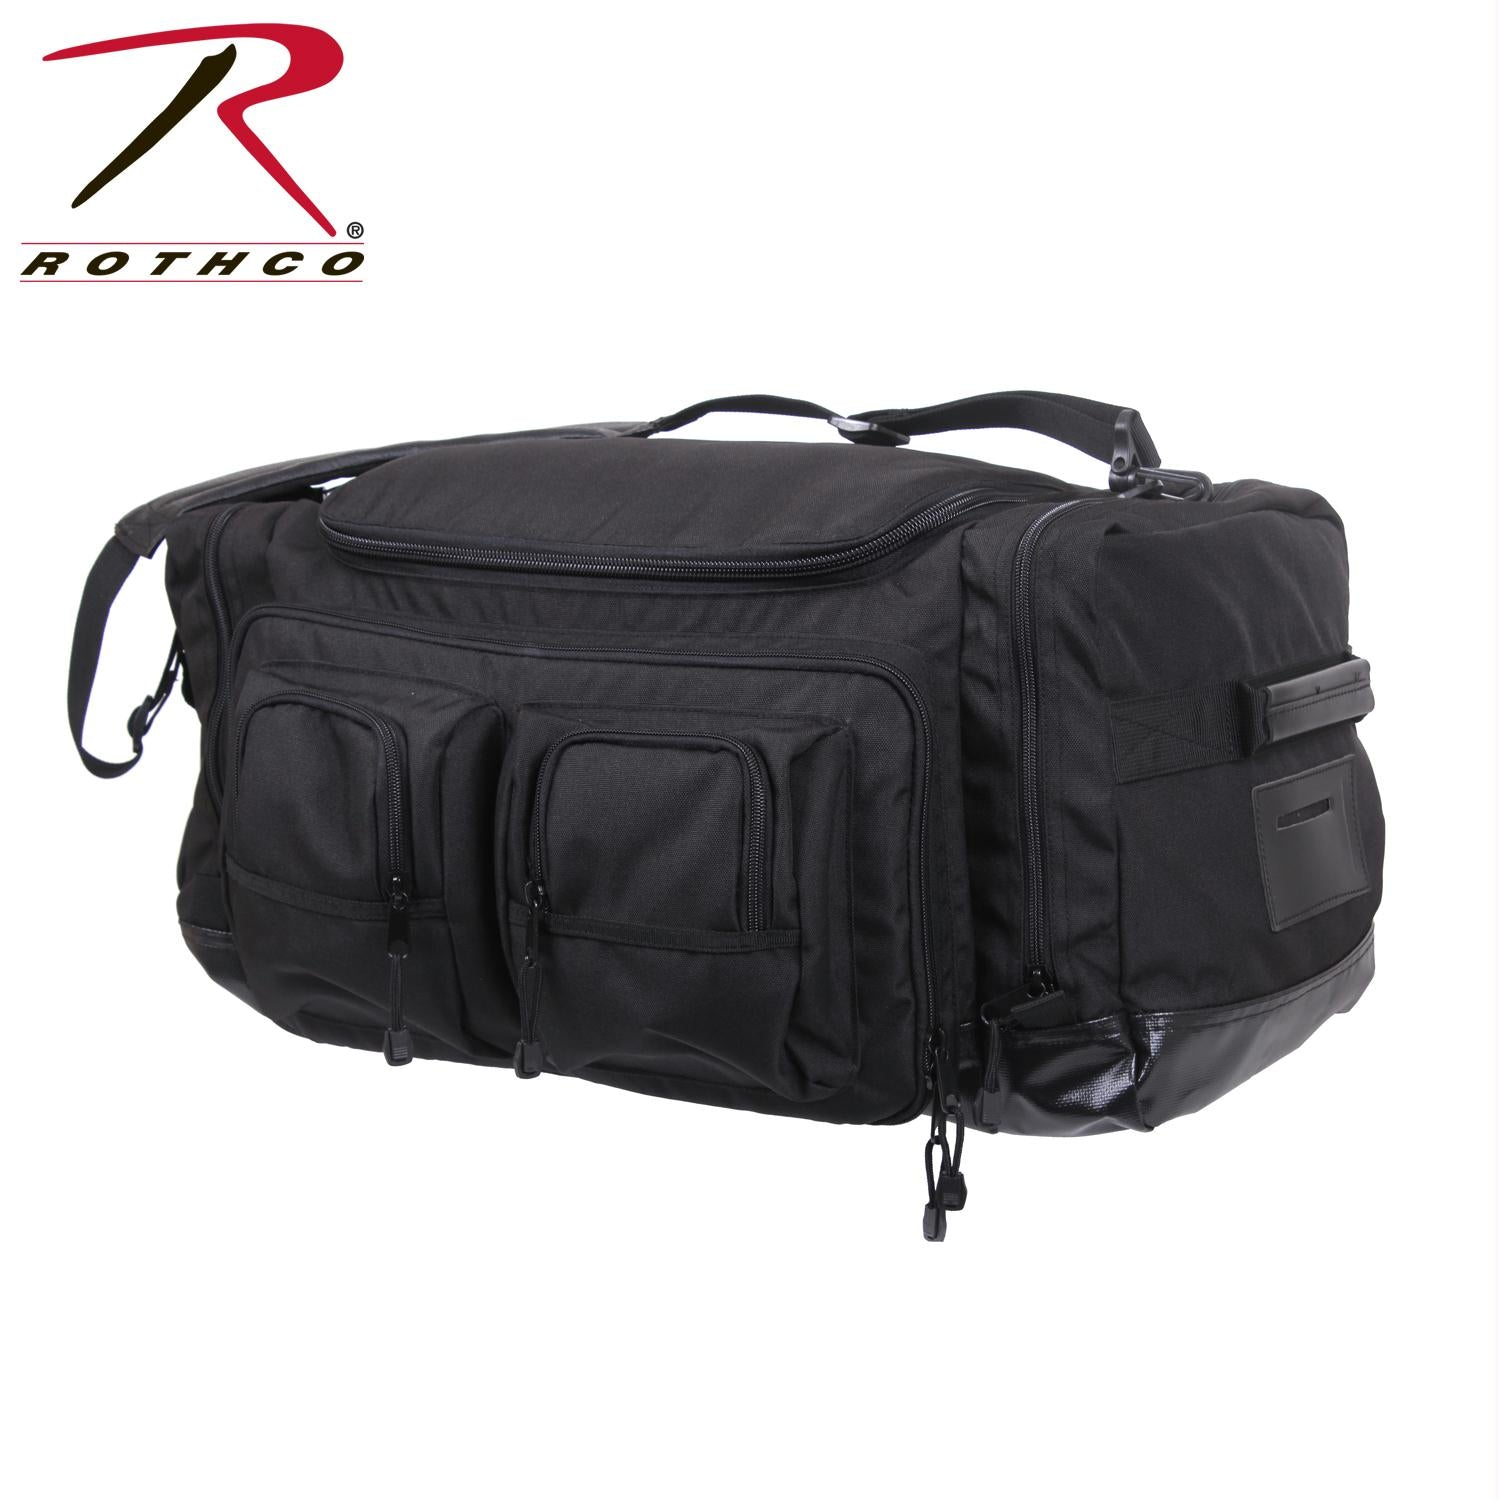 Rothco Deluxe Law Enforcement Gear Bag - Black / One Size